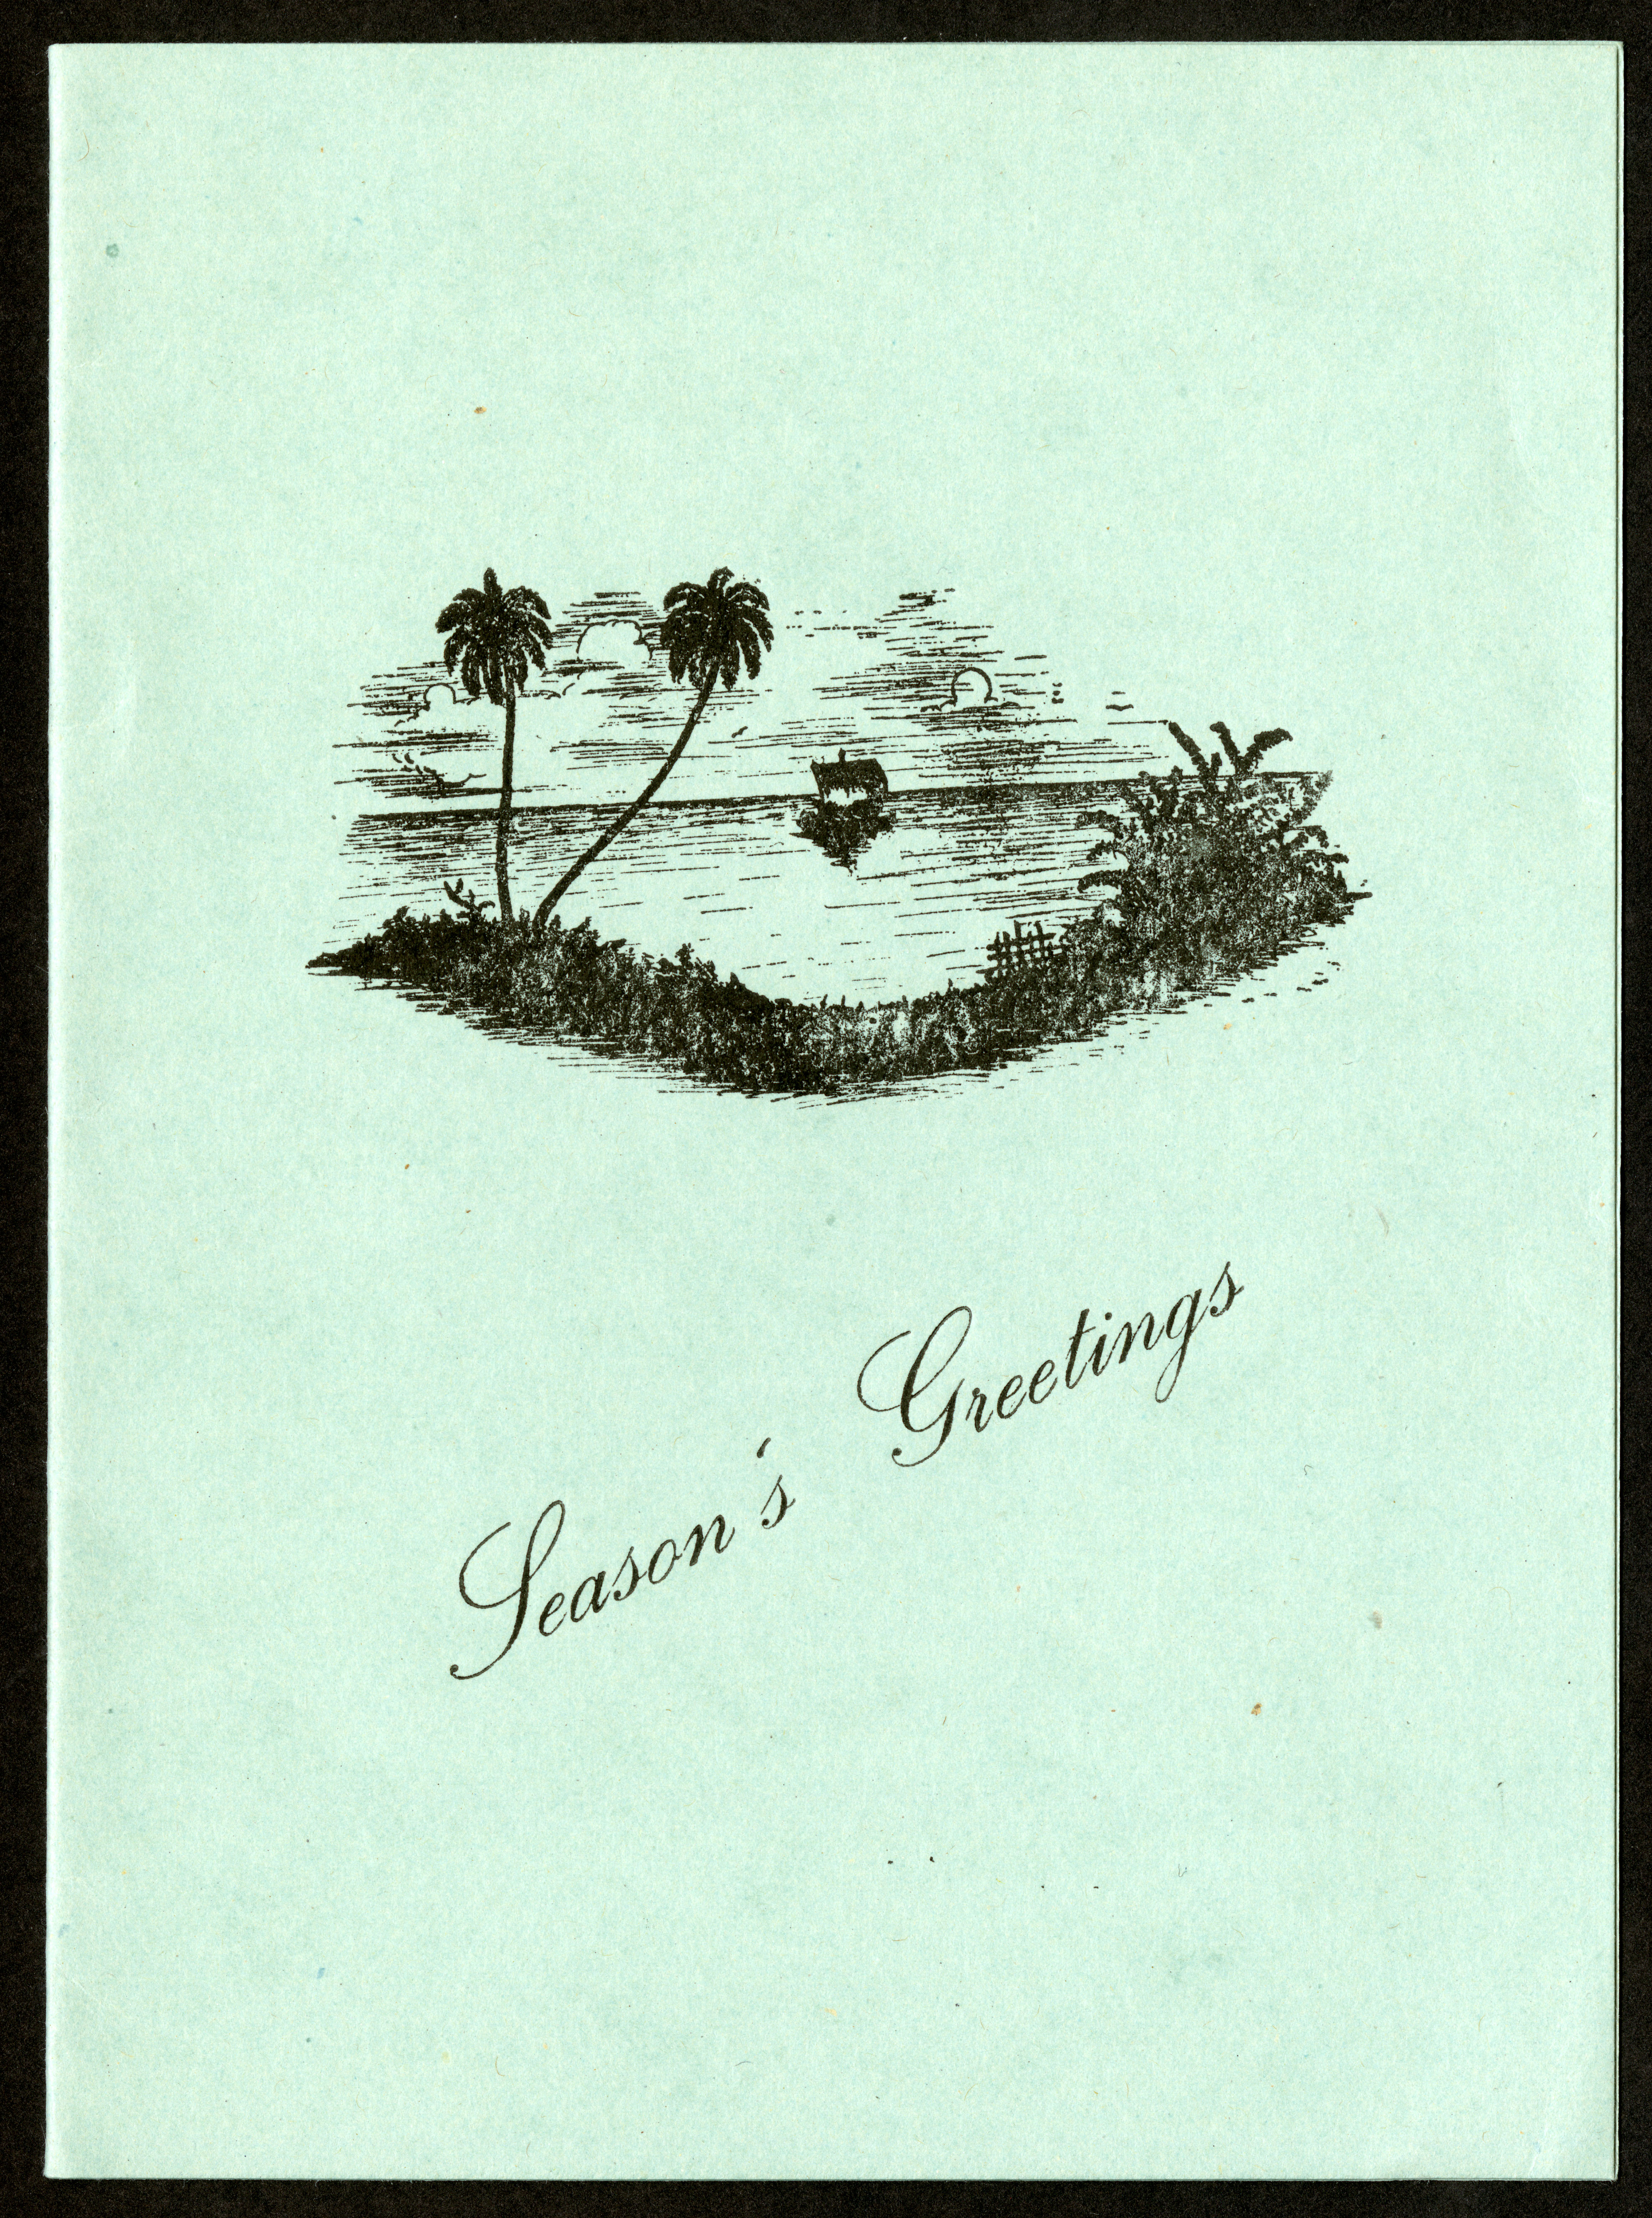 Front of a Season's Greetings Card from S. Jones and Family to Isaac Ginsburg.